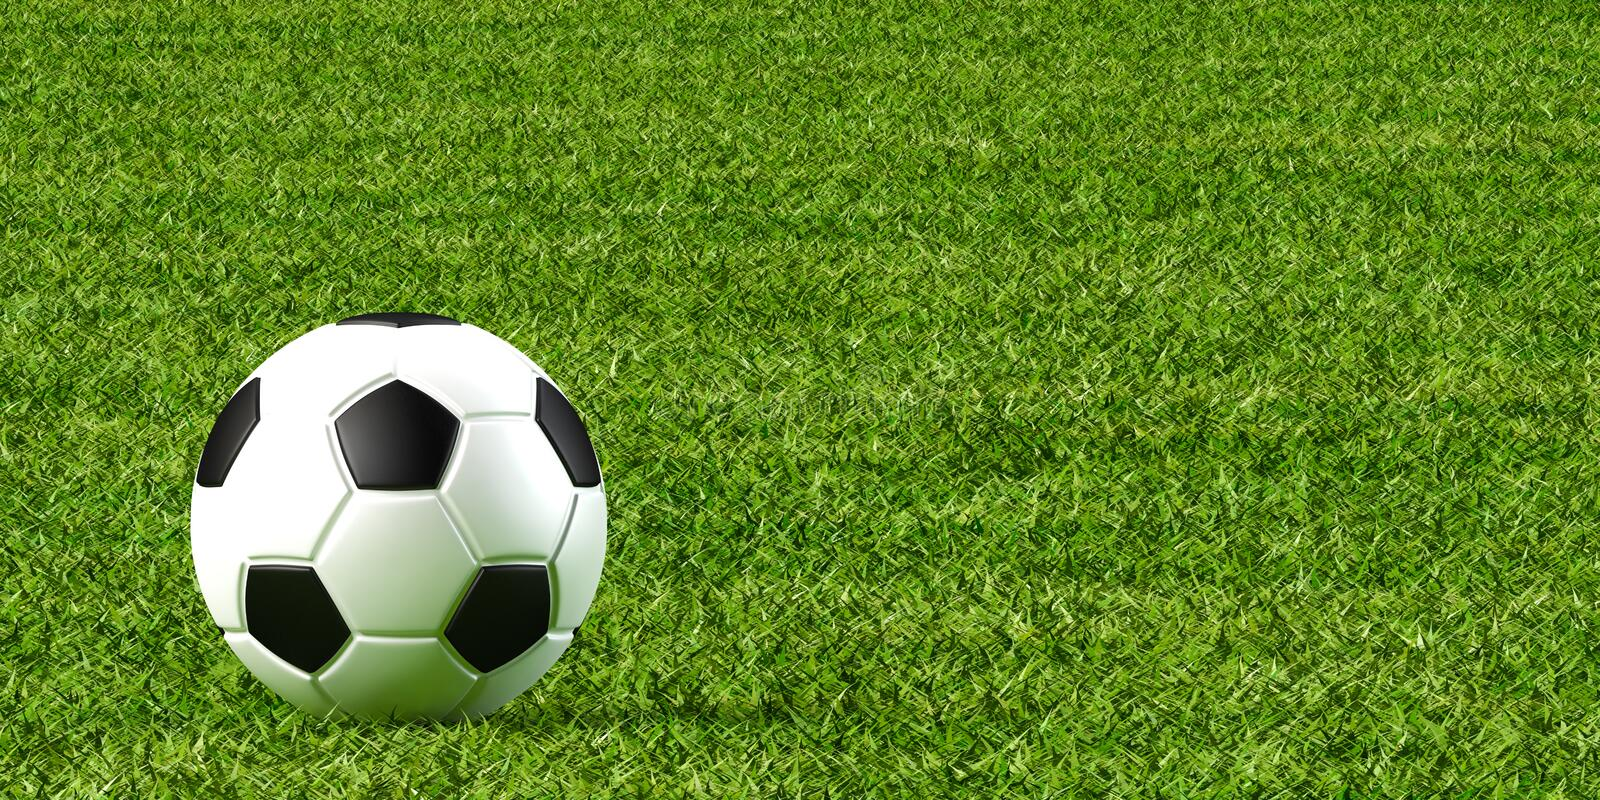 Soccer ball and lawn. 3d illustration of soccer ball and lawn stock illustration